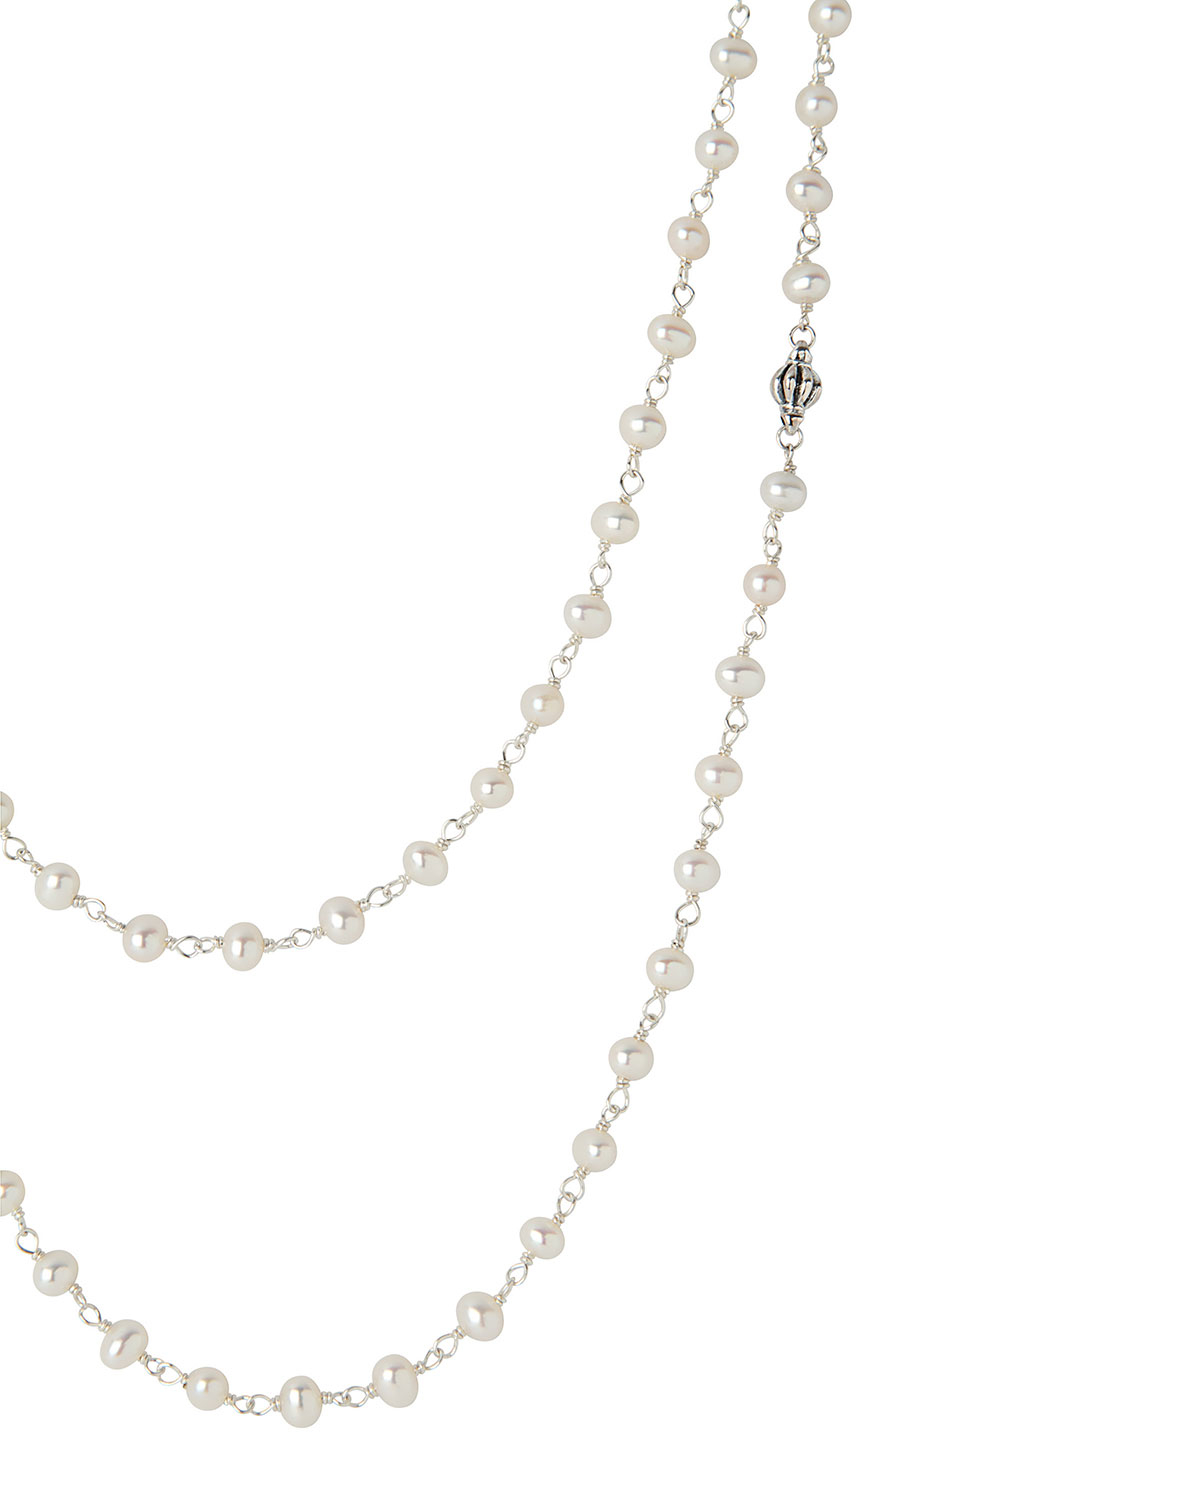 Lagos Pearl Necklace, 36L